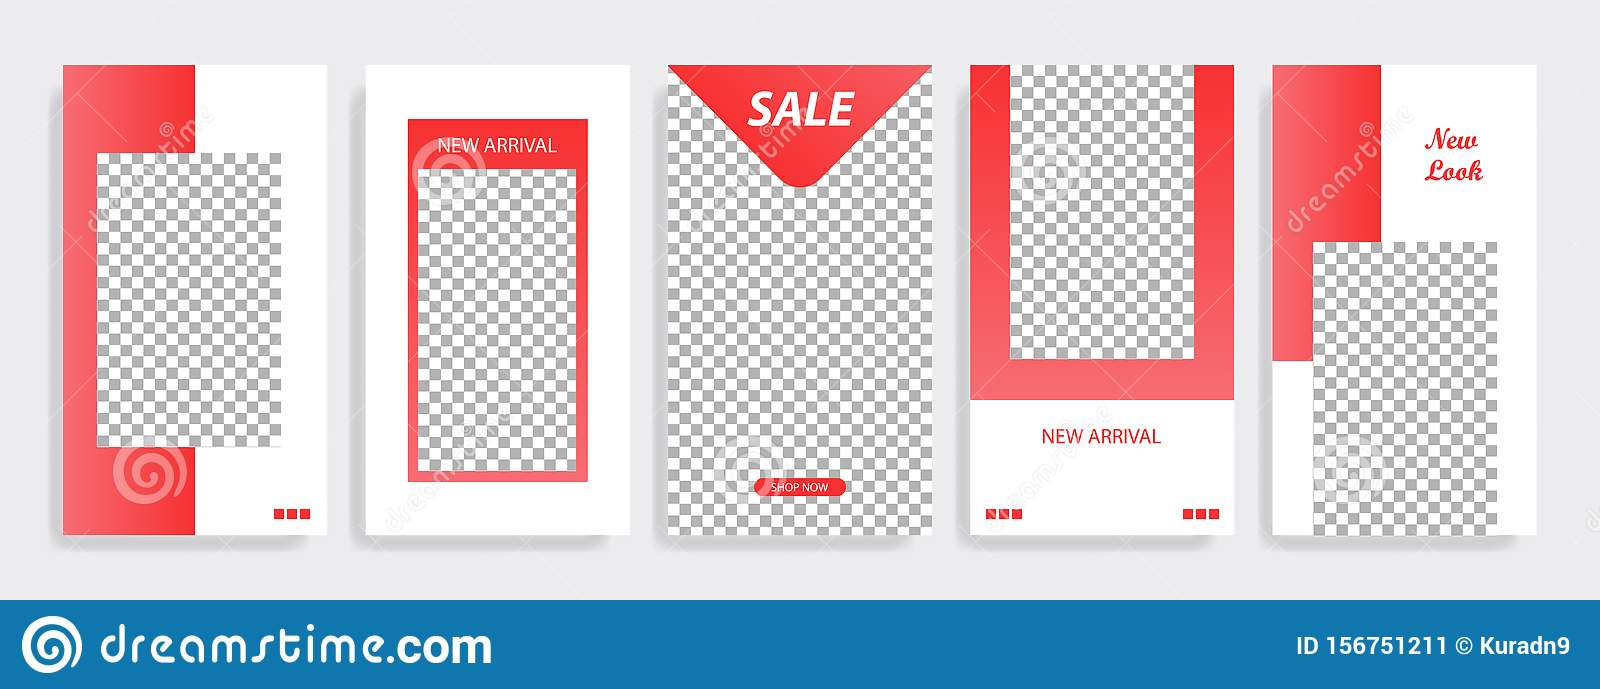 Red minimal geometric Instagram layout banner template